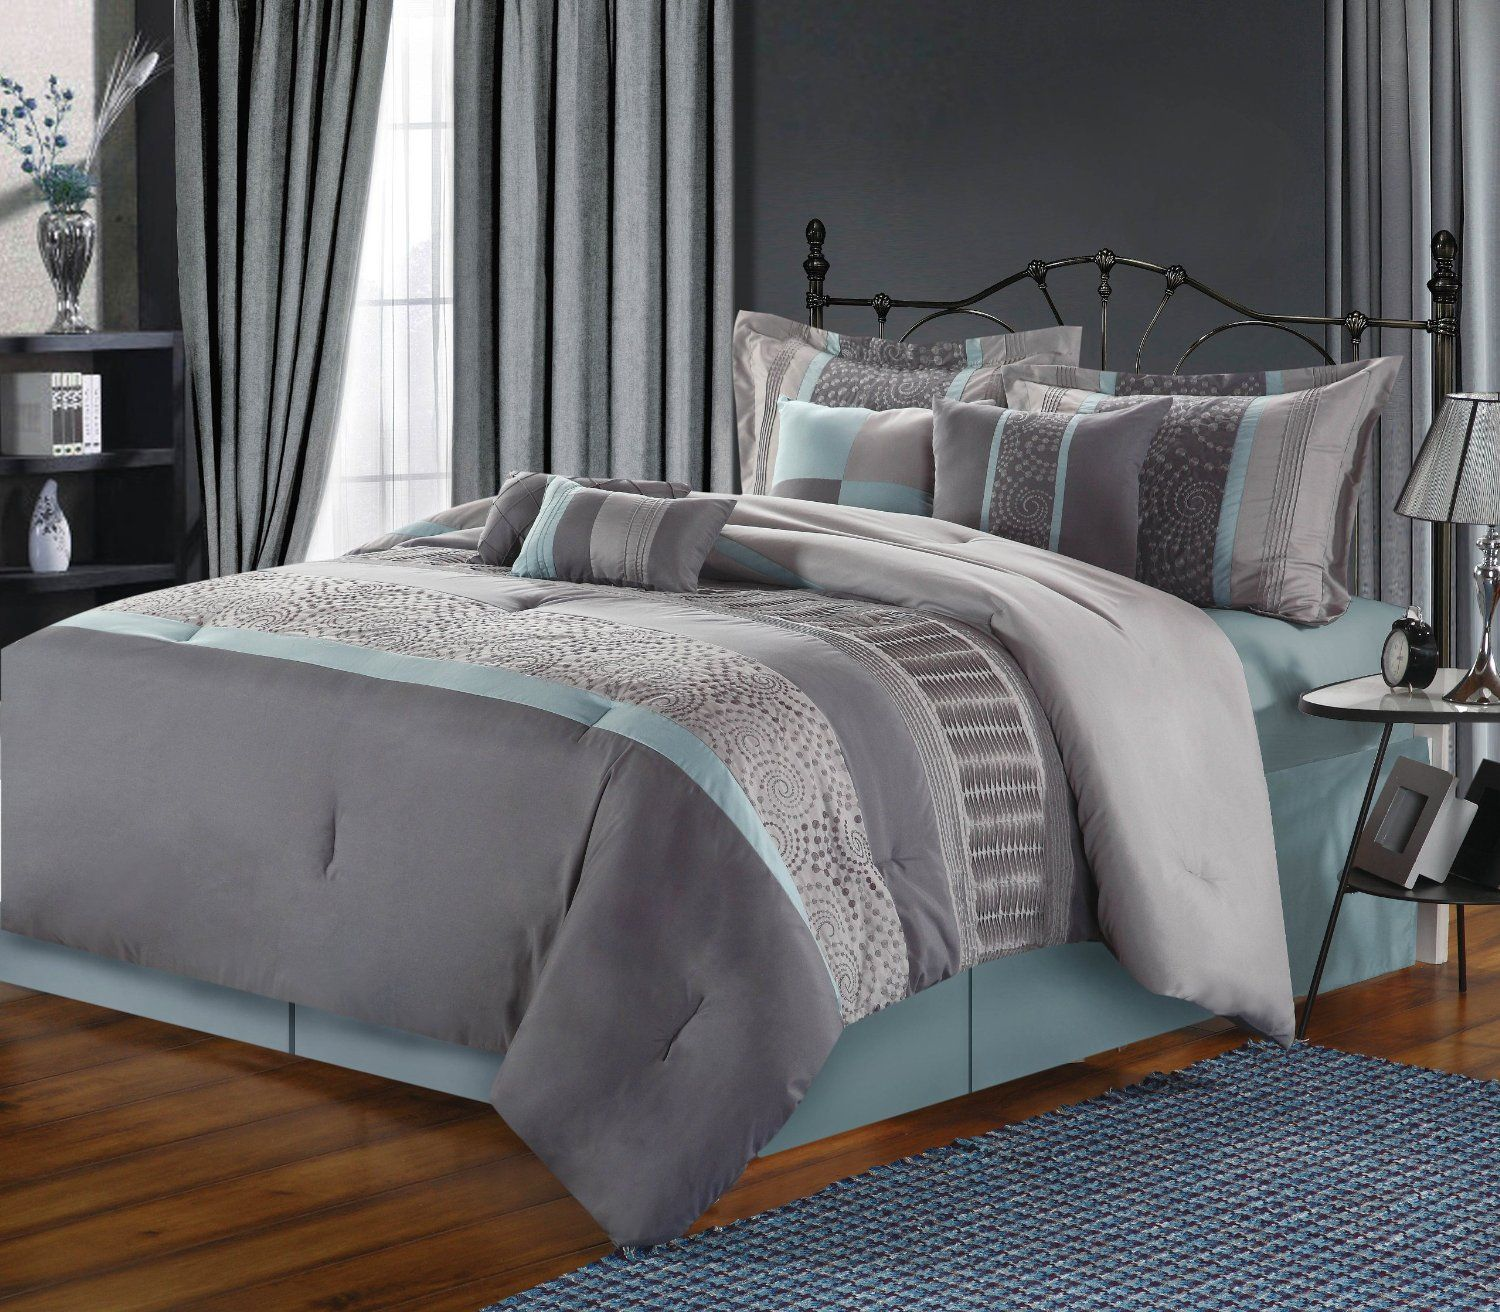 Grey beige and aqua contemporary decorating chic home 8 for Blue white and silver bedroom ideas